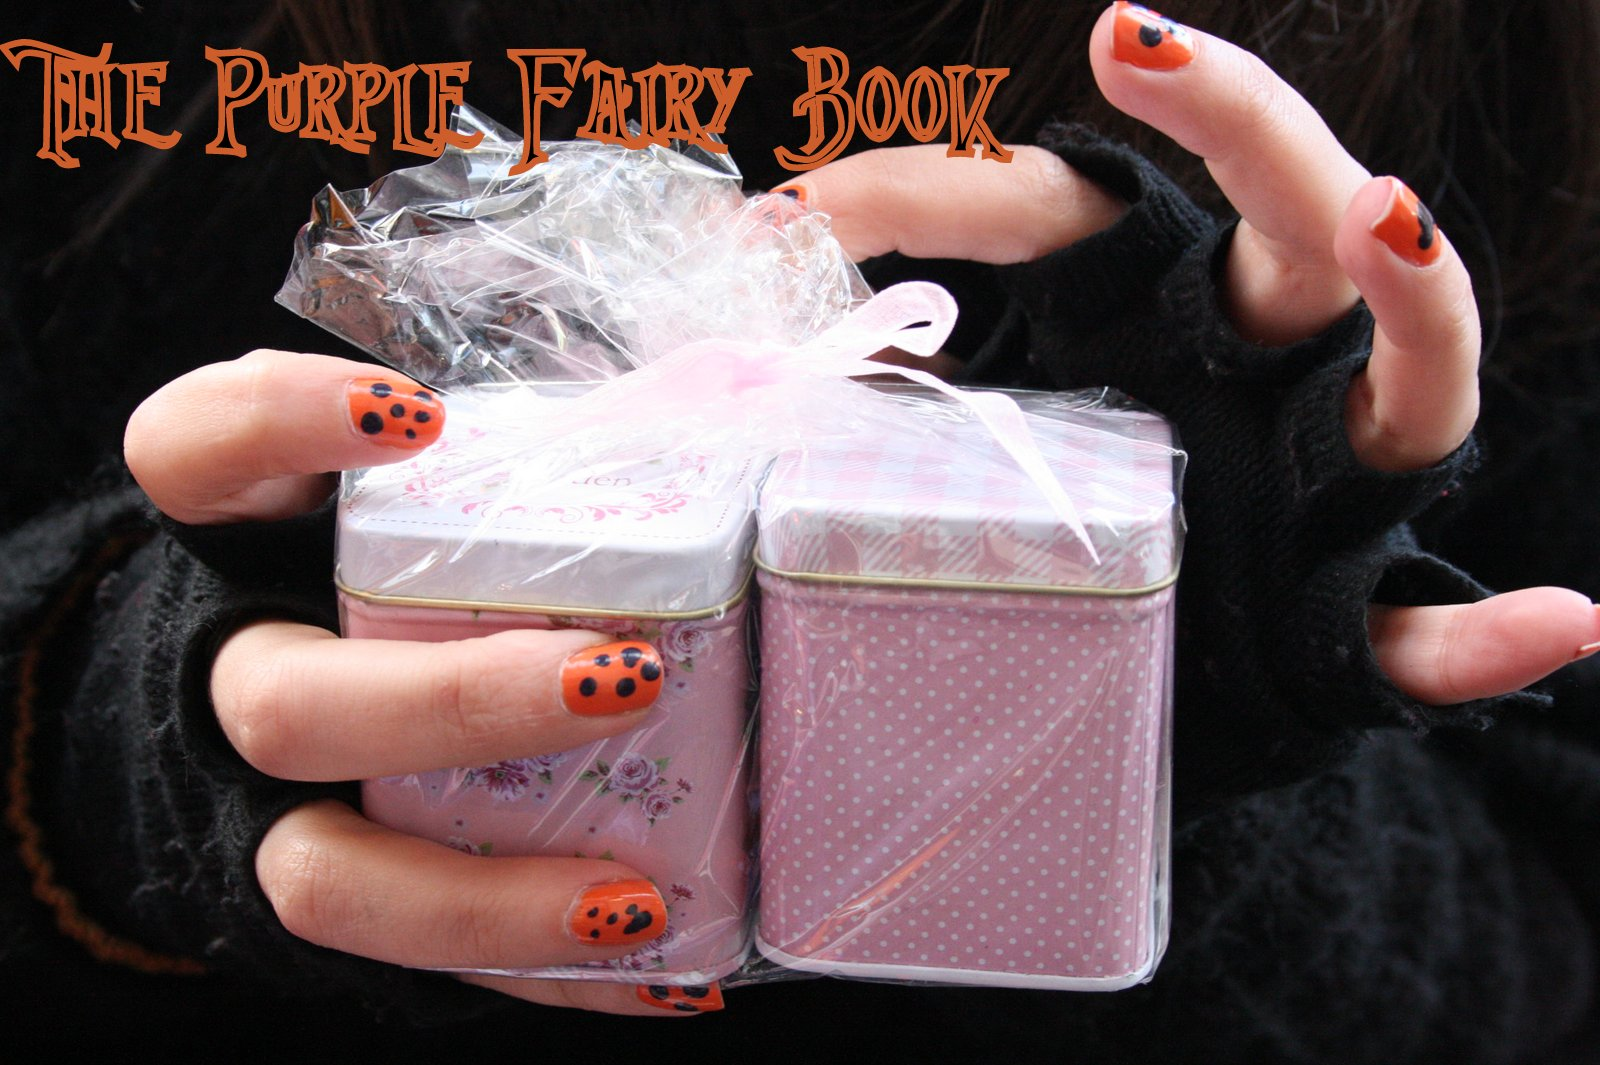 Bougie Qui Sentent Vraiment Bon The Purple Fairy Book Swap D 39halloween Ep 2